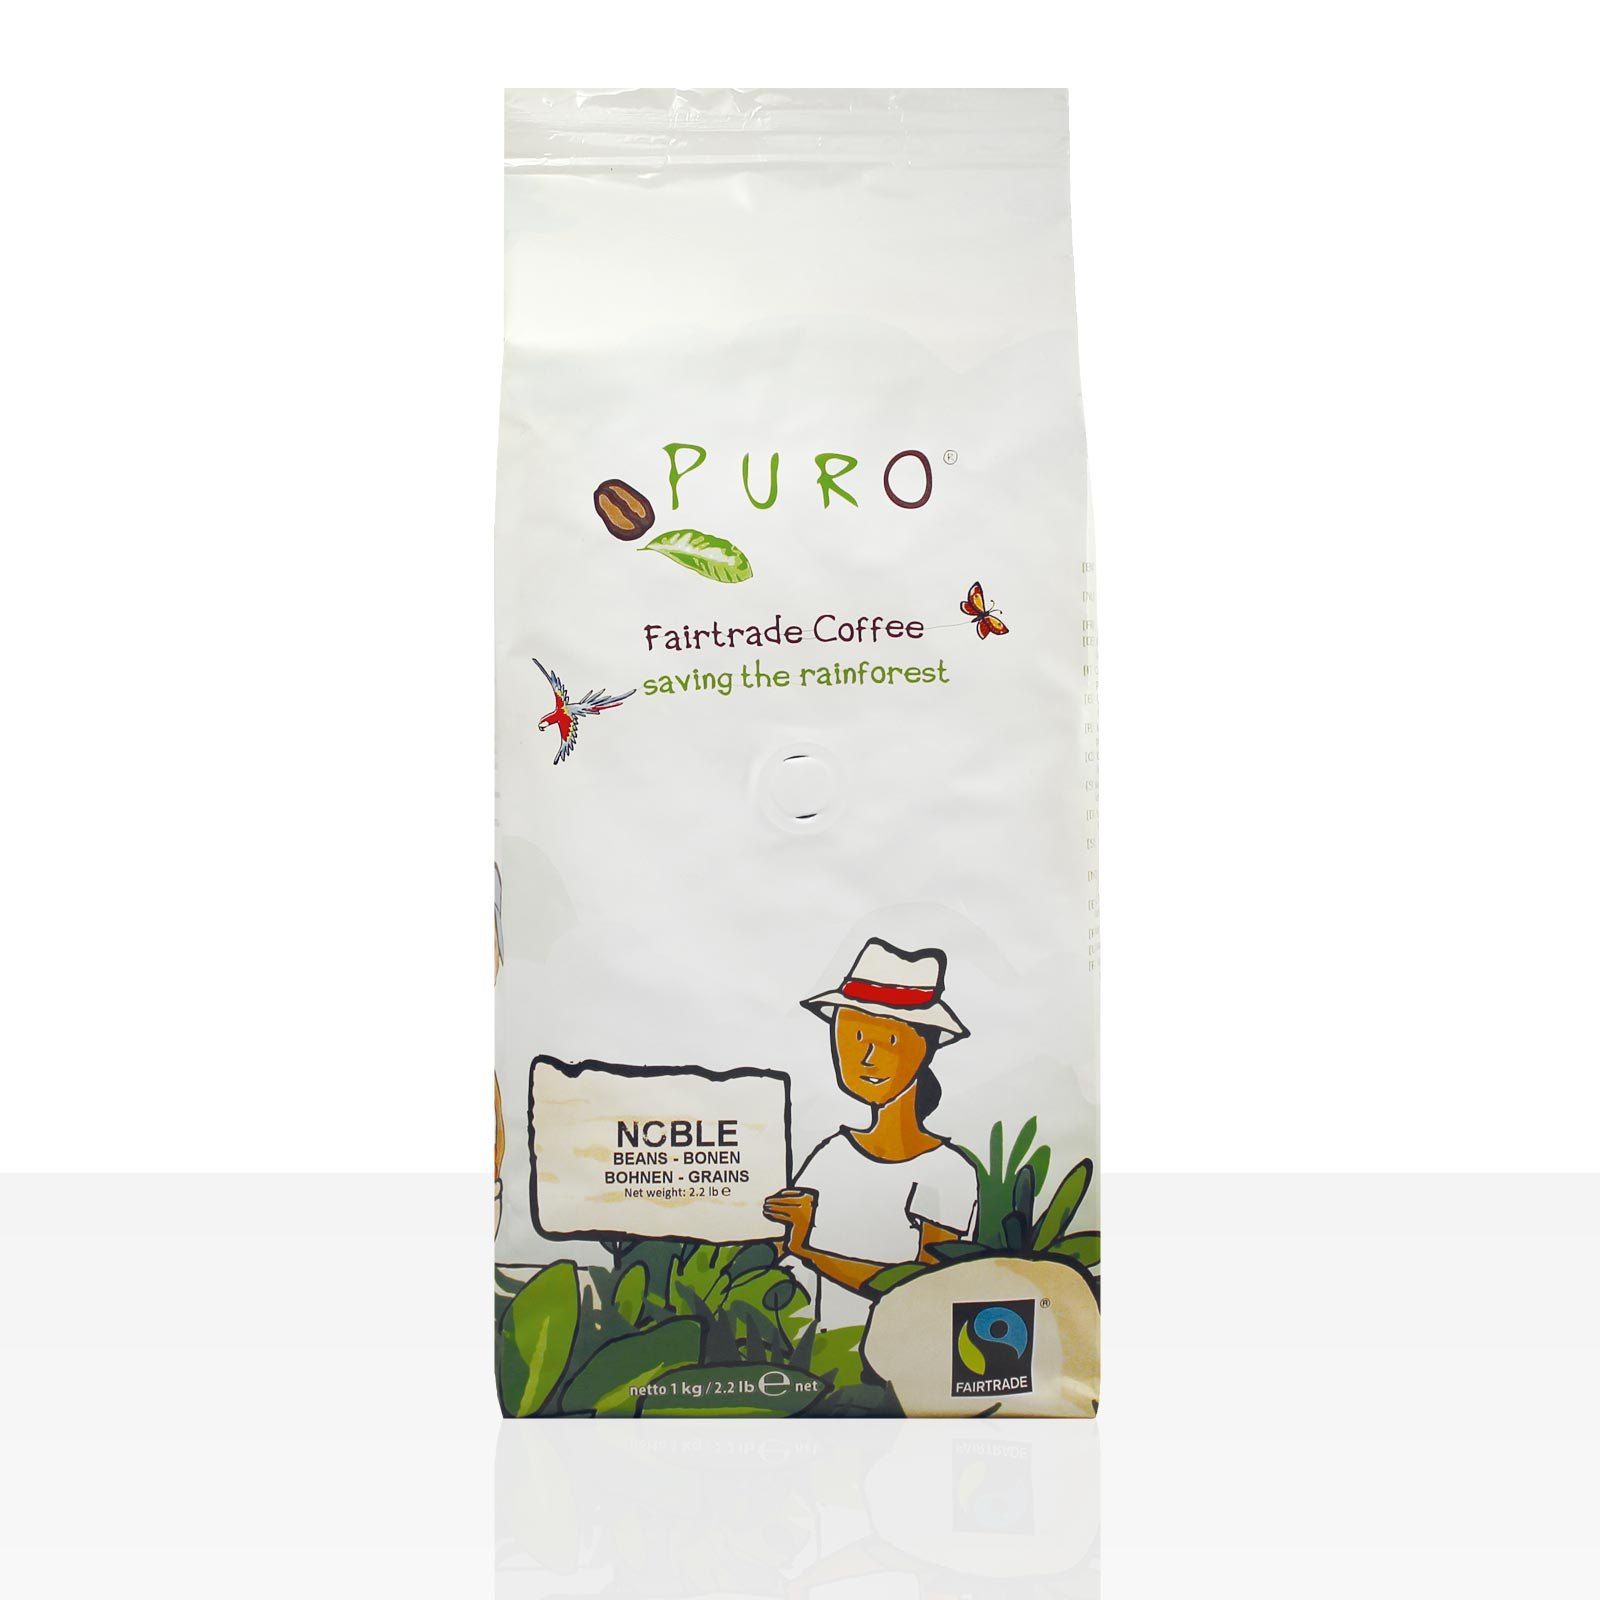 Miko Puro Noble Fairtrade - 1kg Crema ganze Kaffee-Bohne